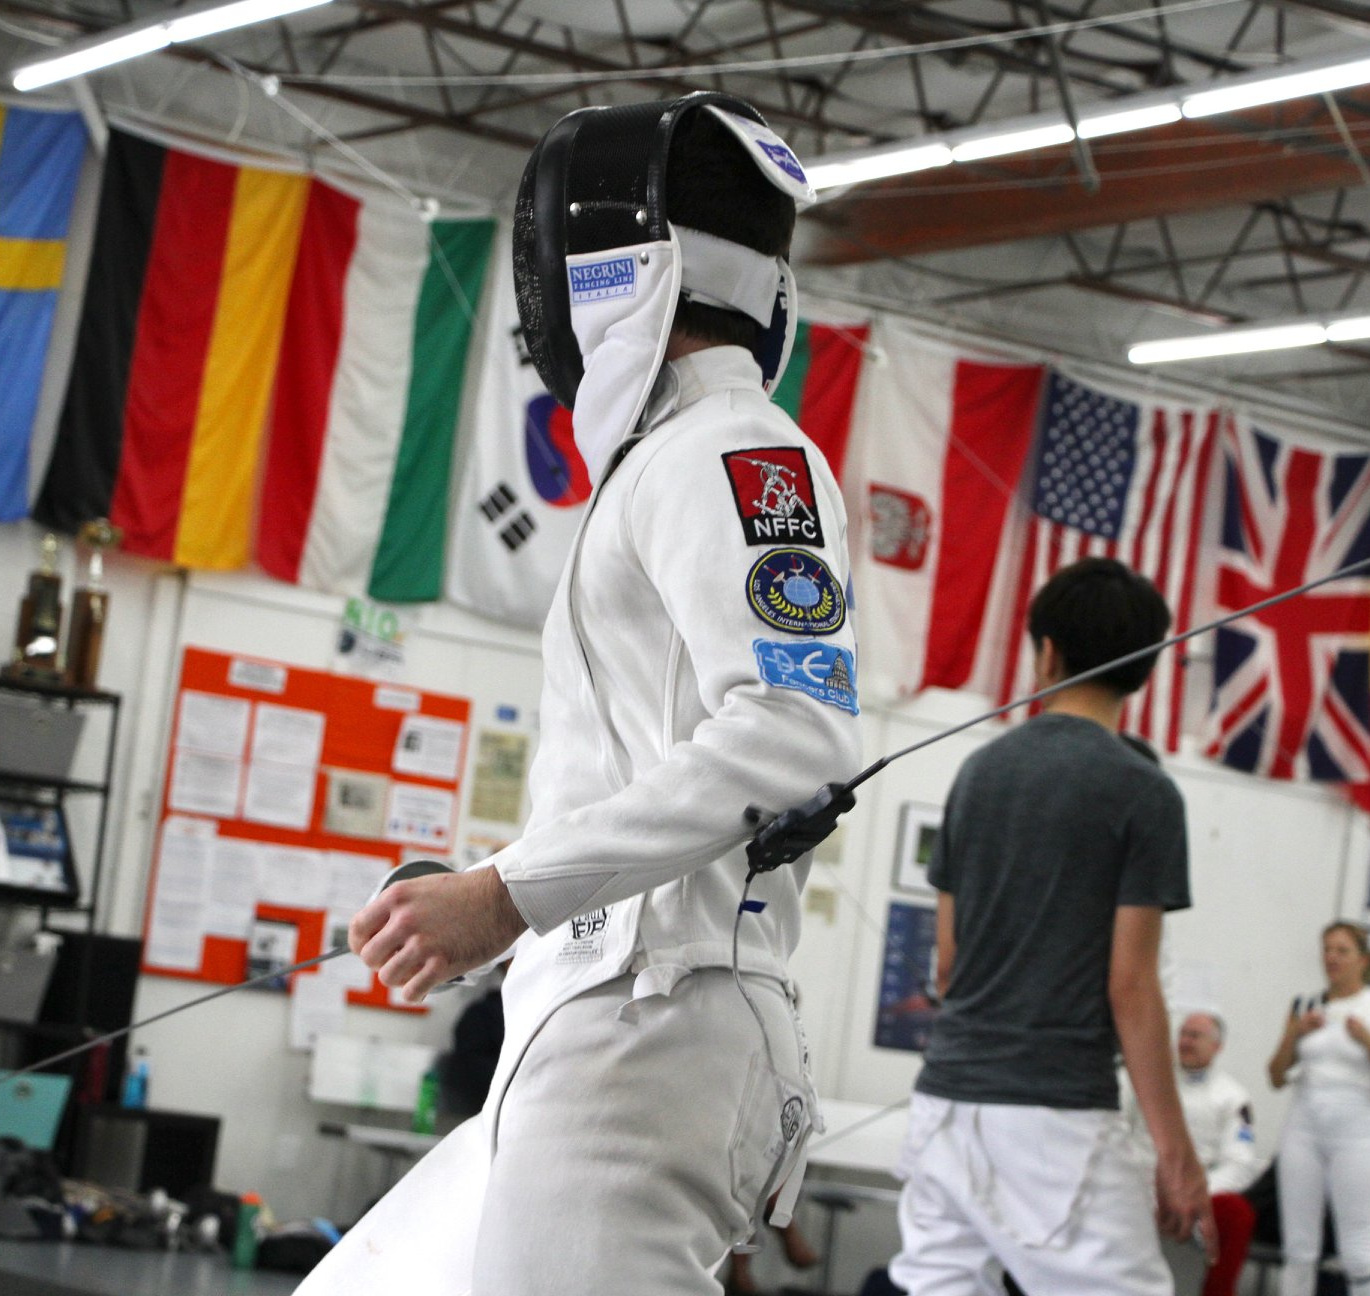 Competing at DC Fencers Club Champagne Challenge November 2018 - PC: Sally Gifford